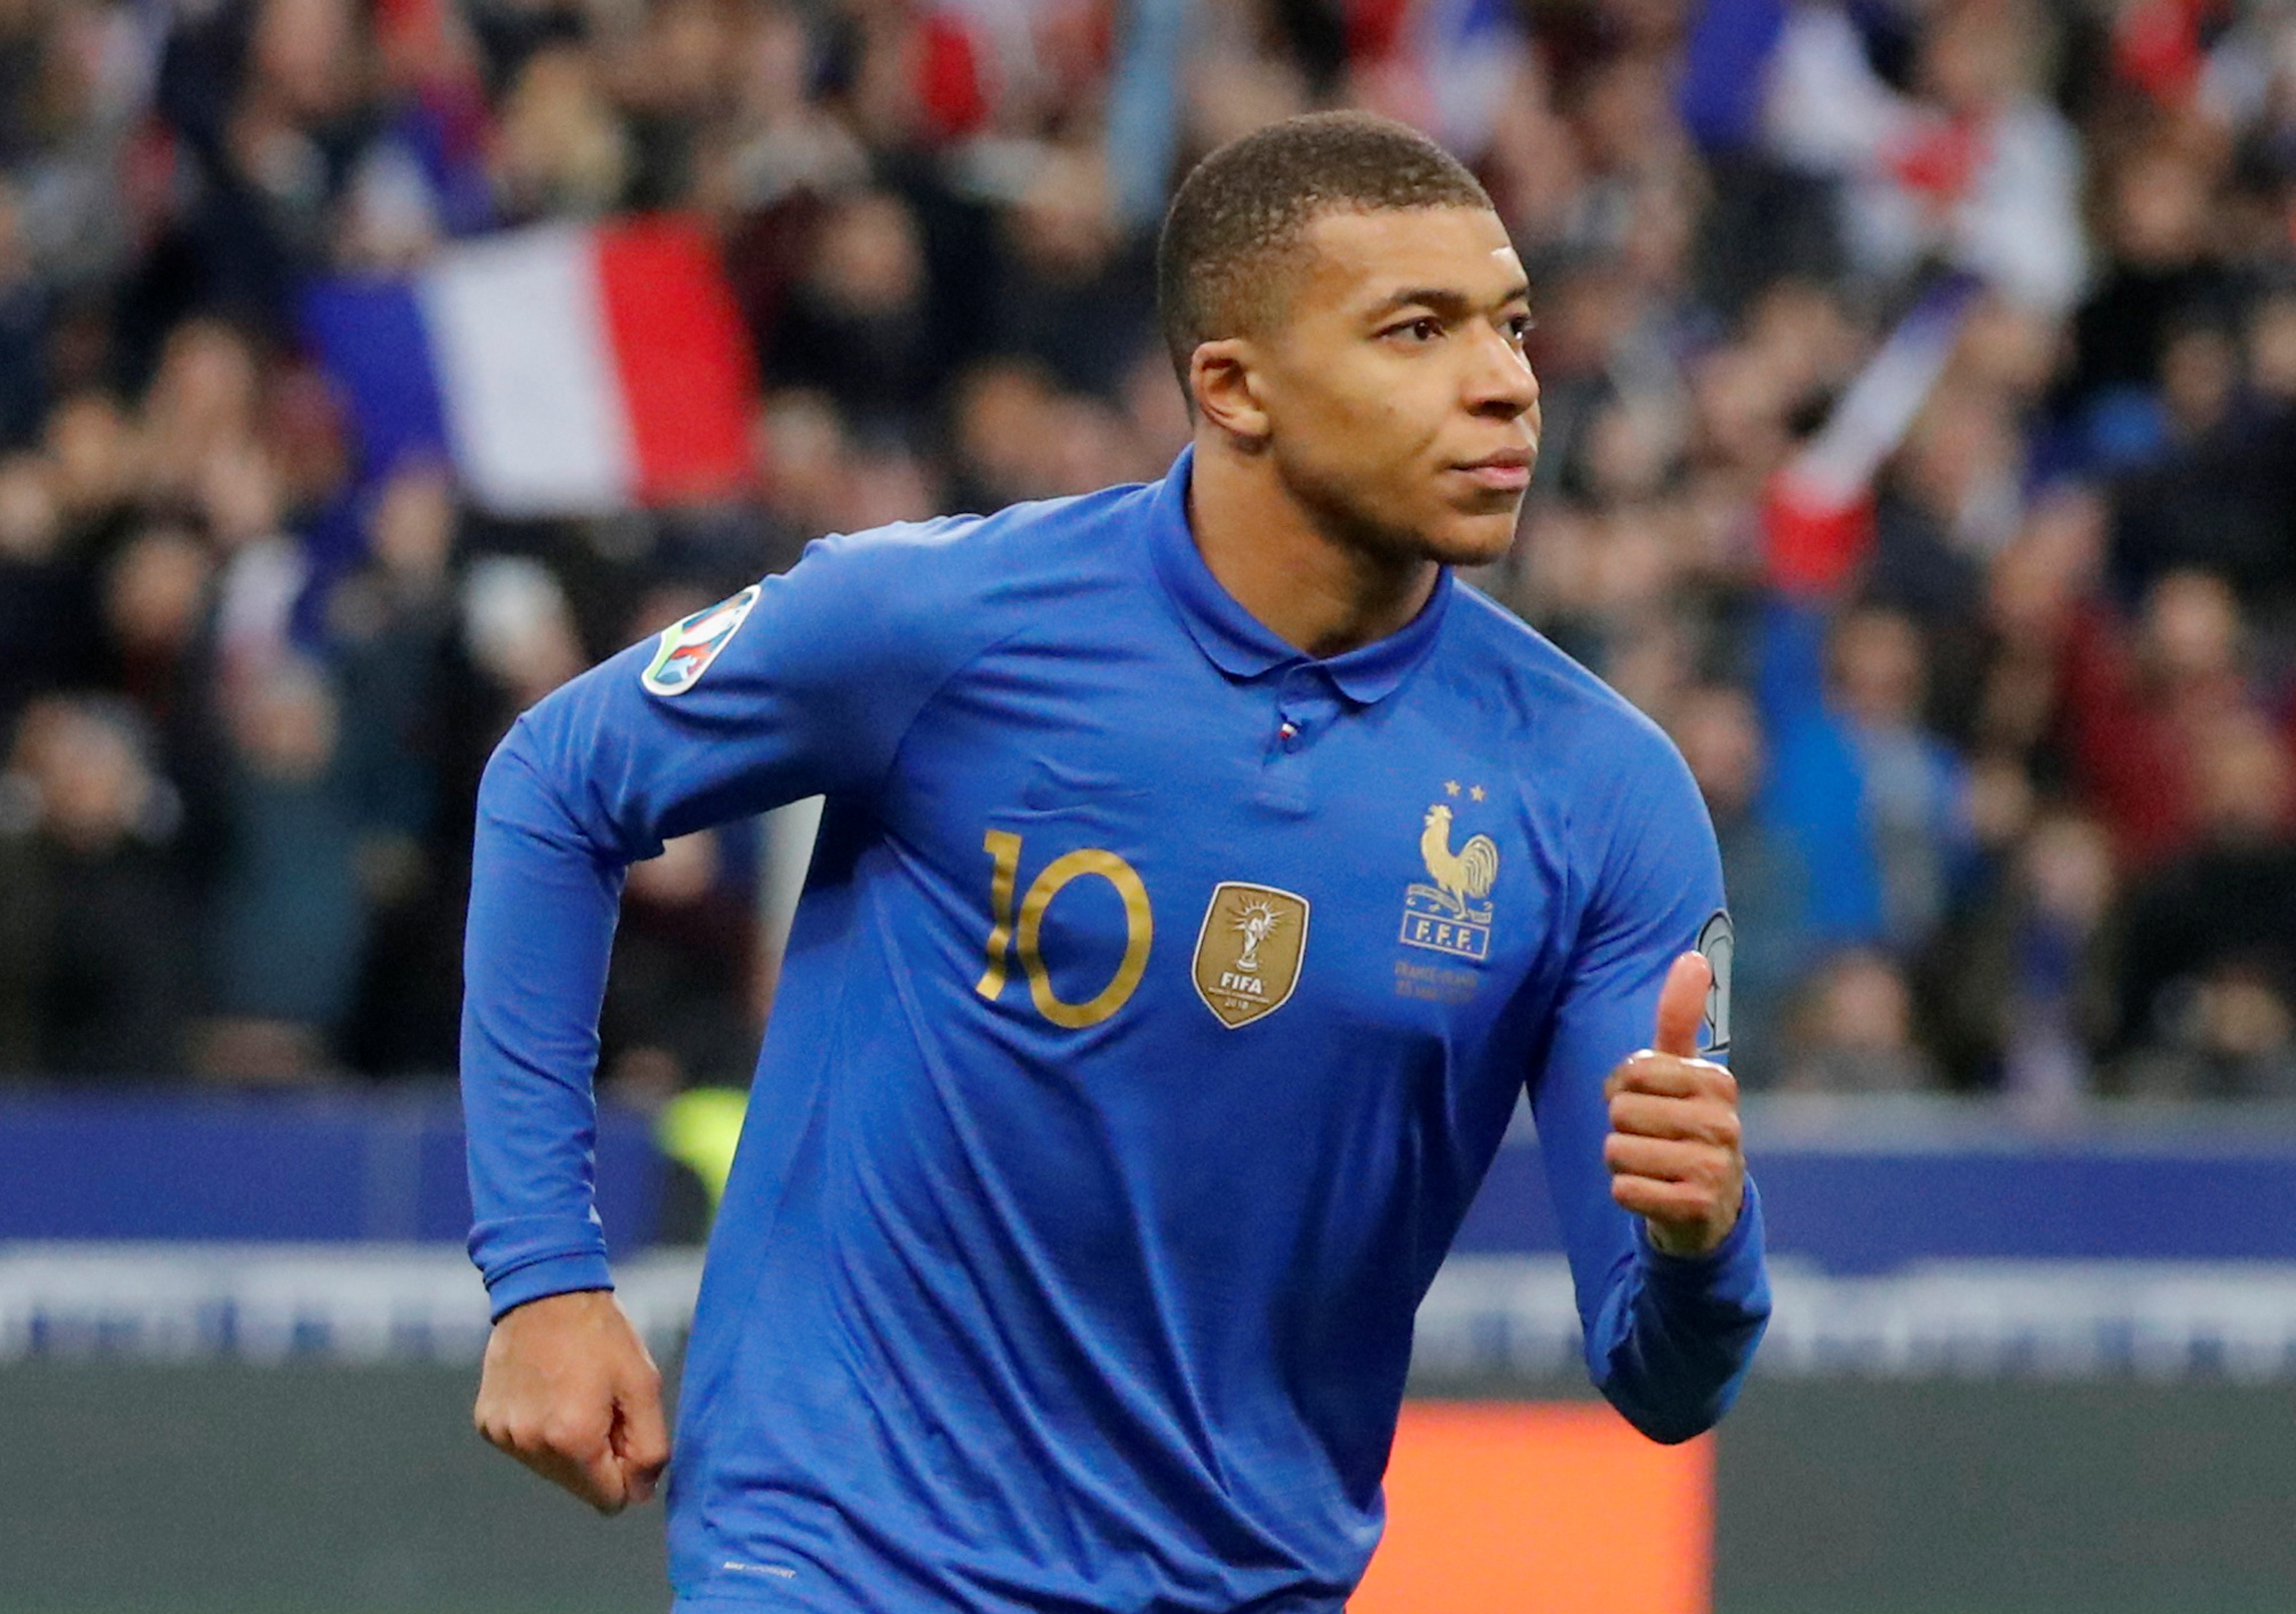 on sale 2df55 ac46a Mbappe continues his rise with France in Iceland rout | The ...